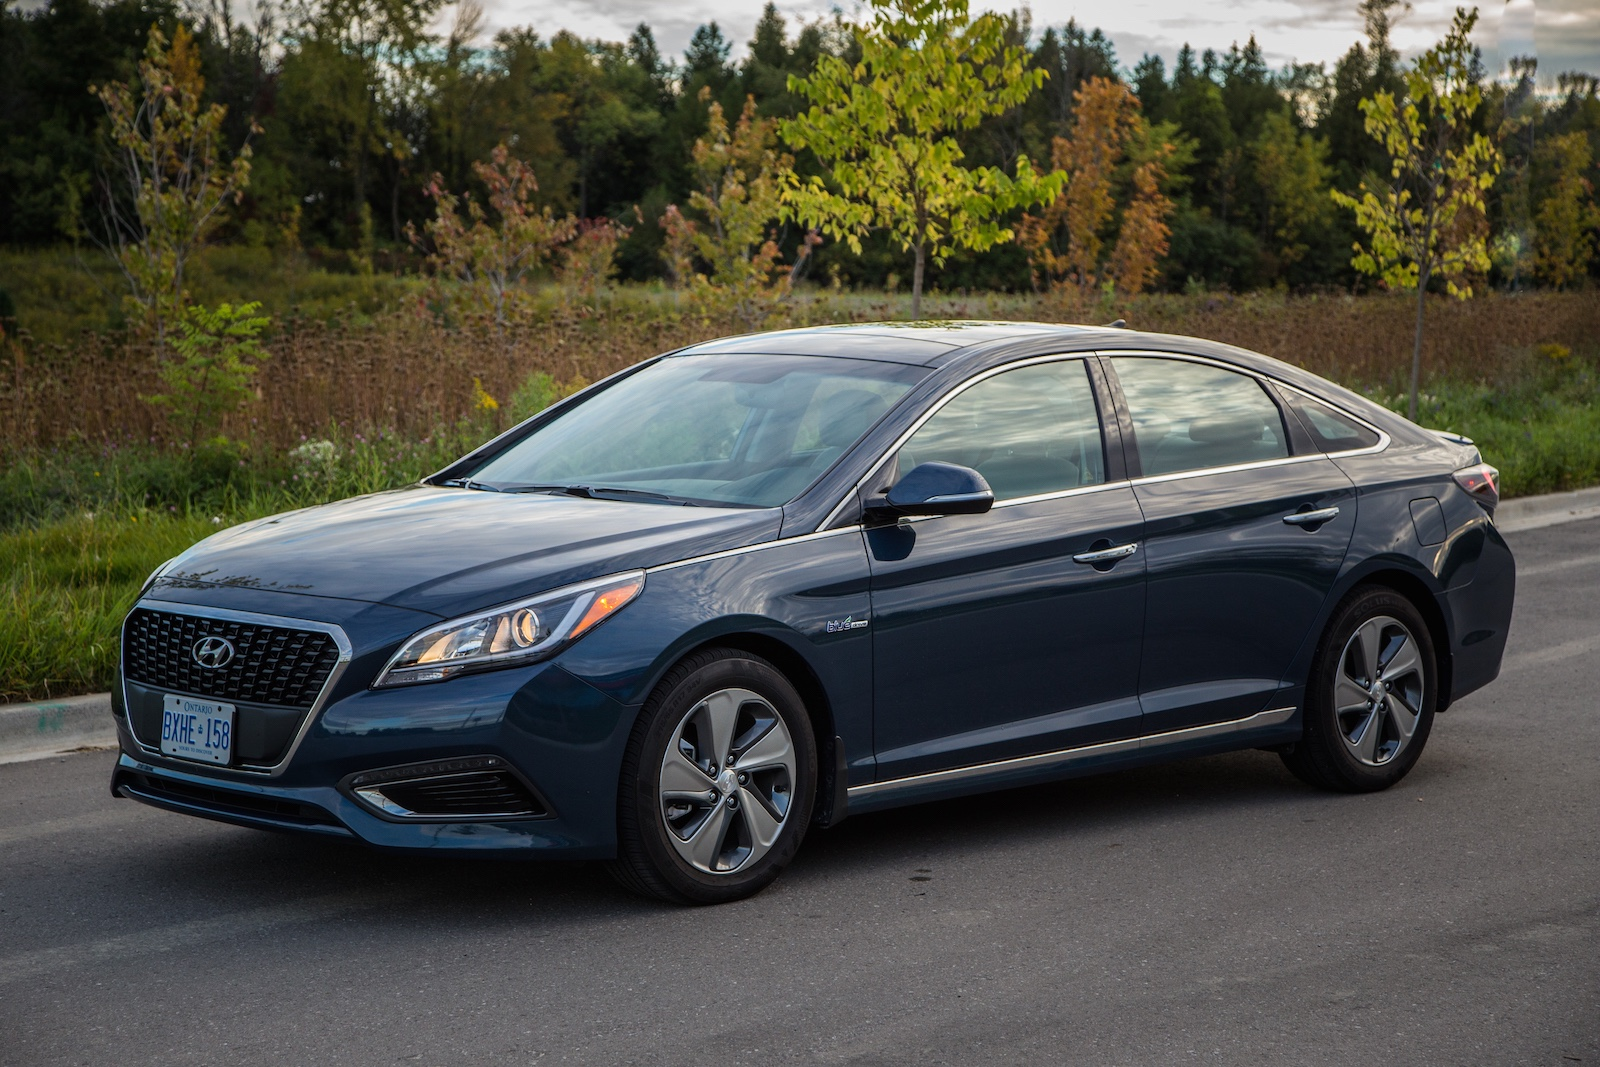 review 2016 hyundai sonata hybrid canadian auto review. Black Bedroom Furniture Sets. Home Design Ideas